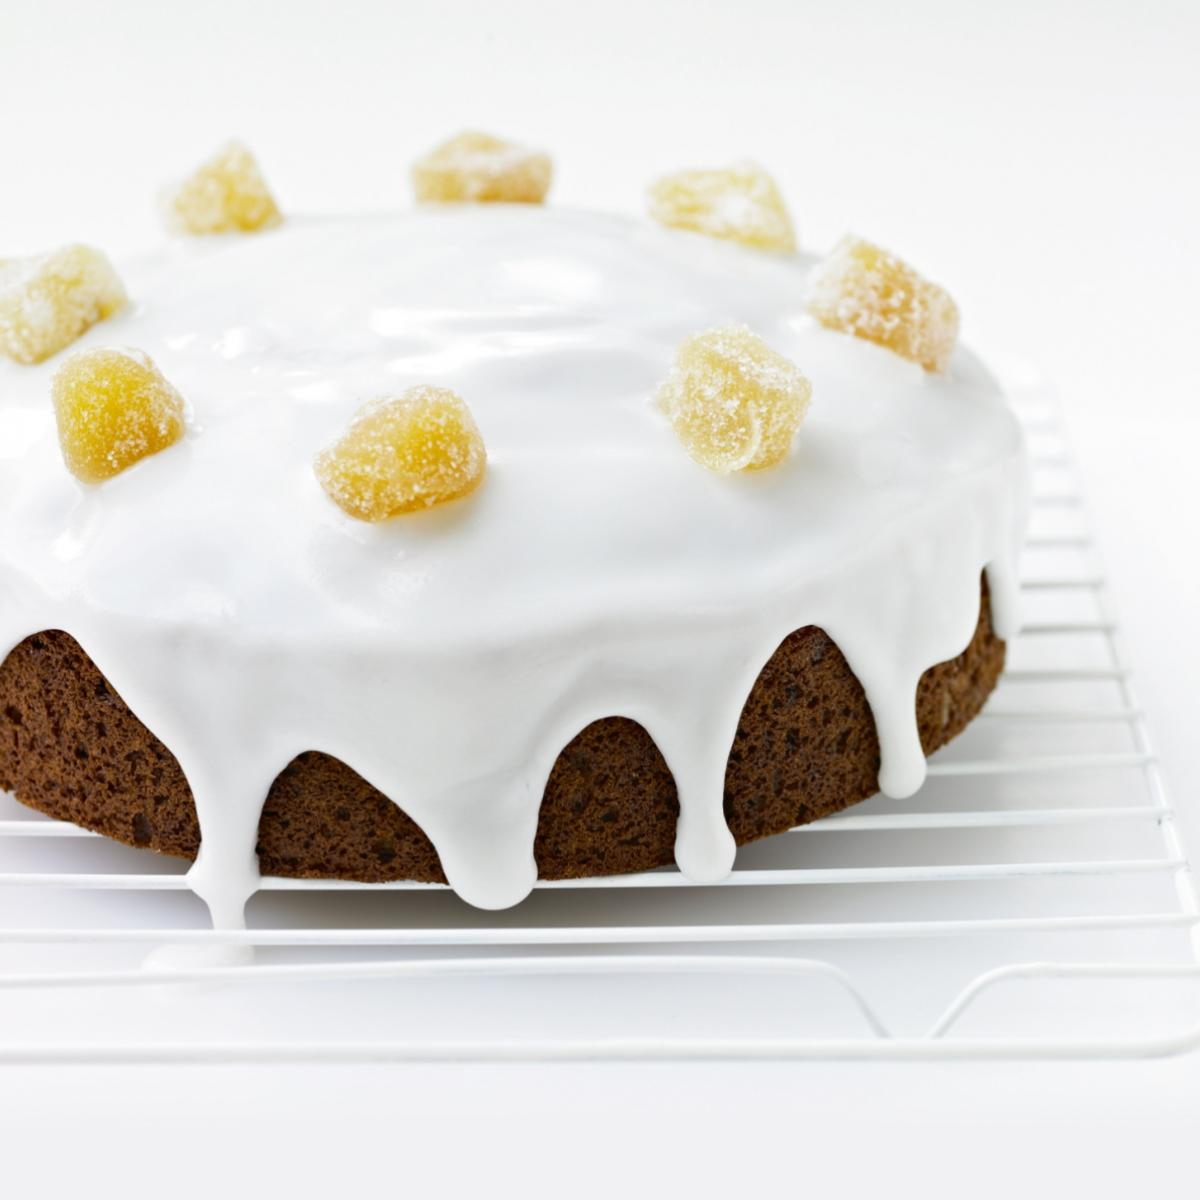 A picture of Delia's Iced Honey and Spice Cake recipe